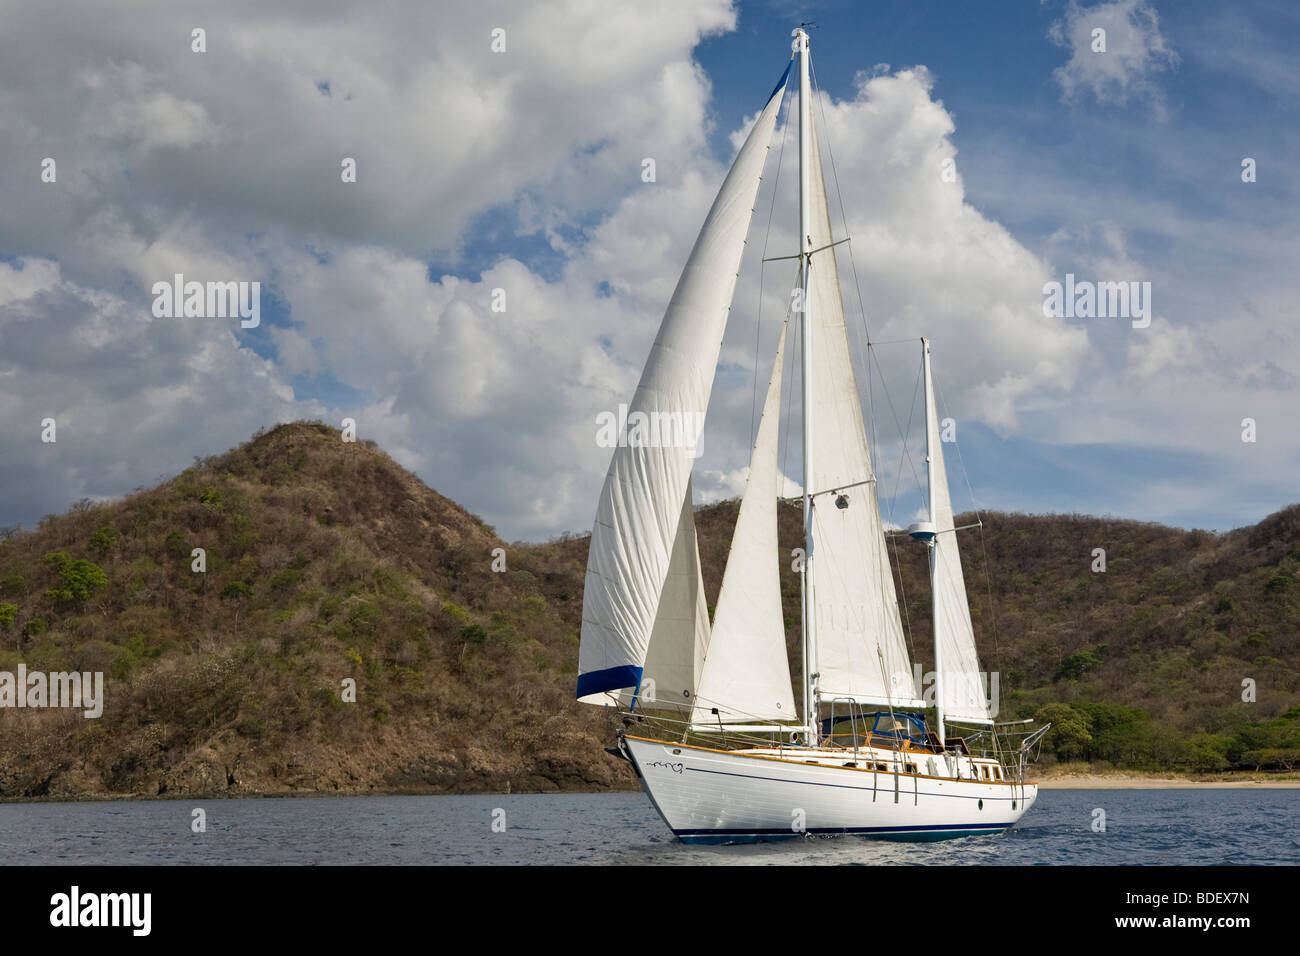 Ketch rig sailboat cruising along the shoreline in the Papagayo Bay, Guanacaste, Costa Rica. Stock Photo